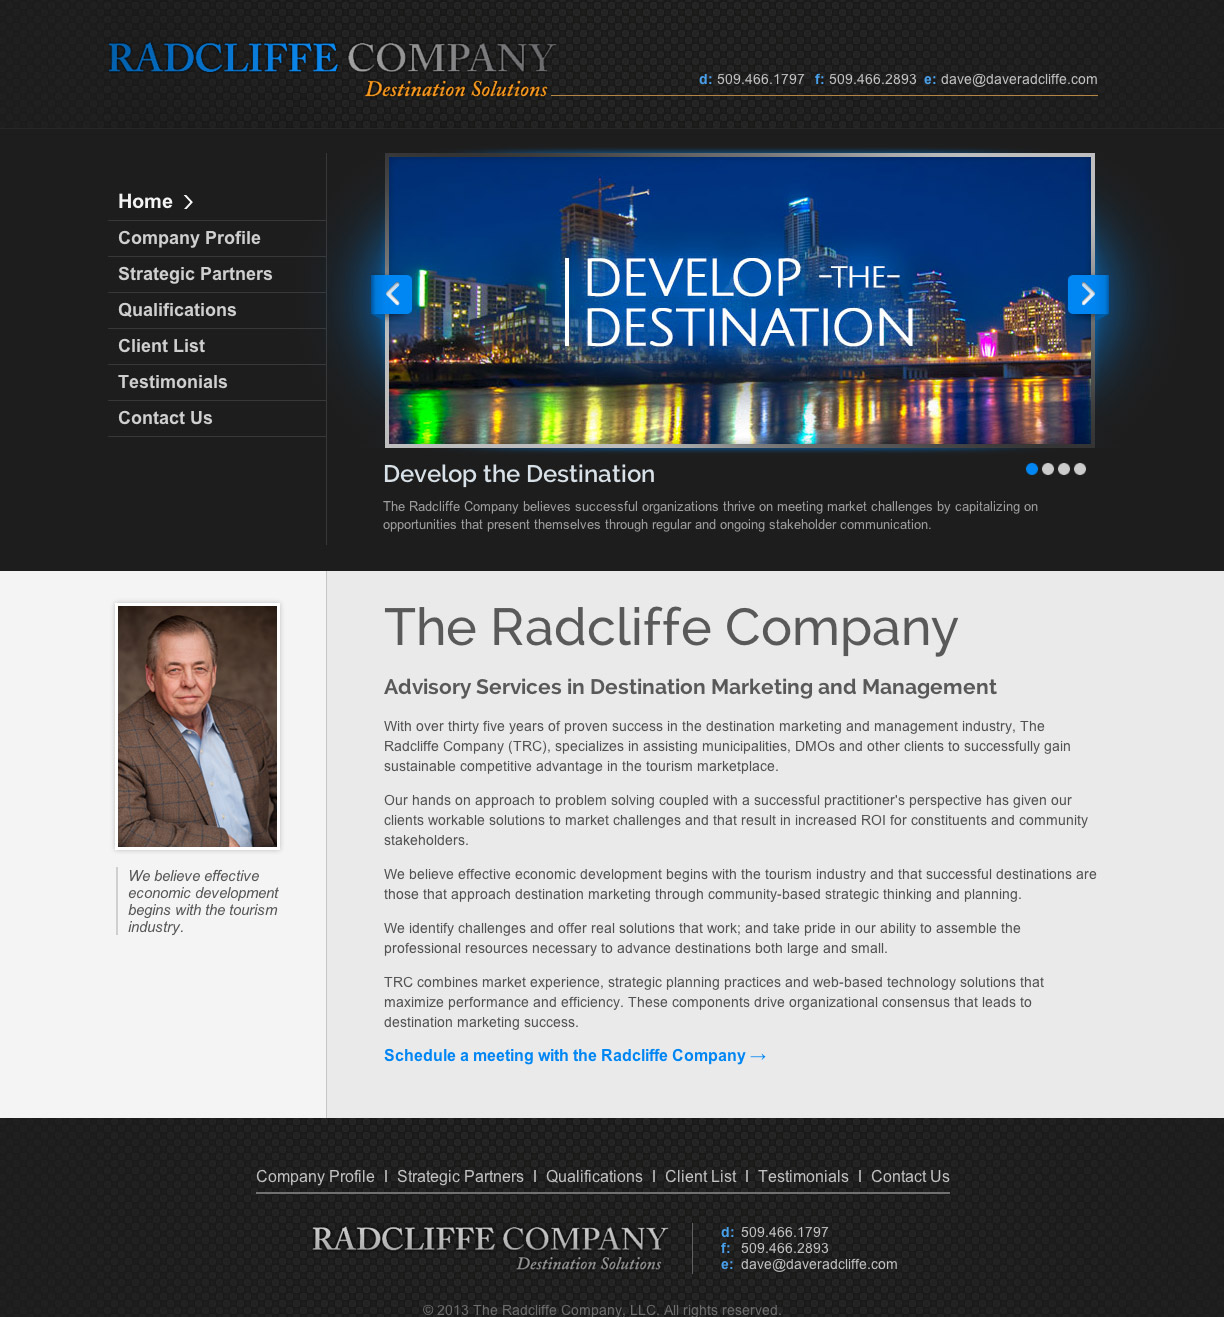 Dave Radcliffe website development & design